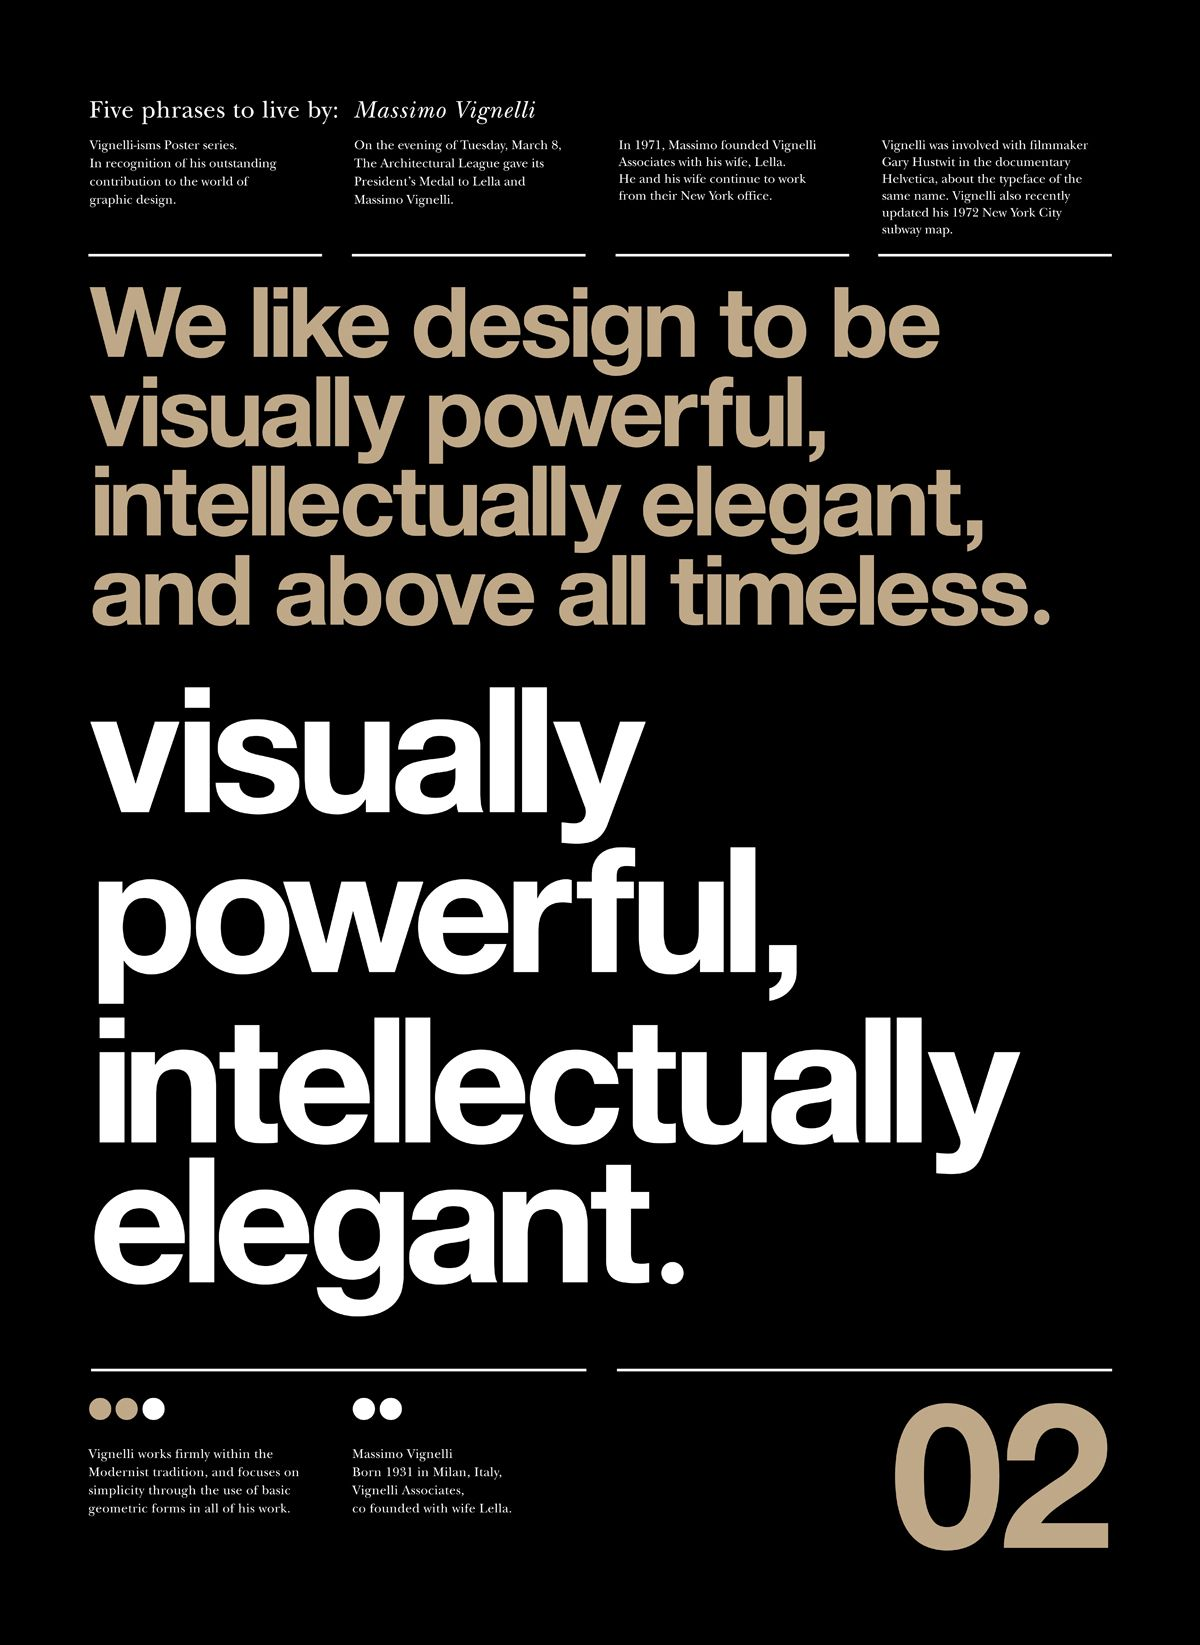 Graphic design poster quotes - 5 Killer Phrases To Live By Massimo Vignellidesign Quotesdesign Humordarts Poster Seriesgraphic